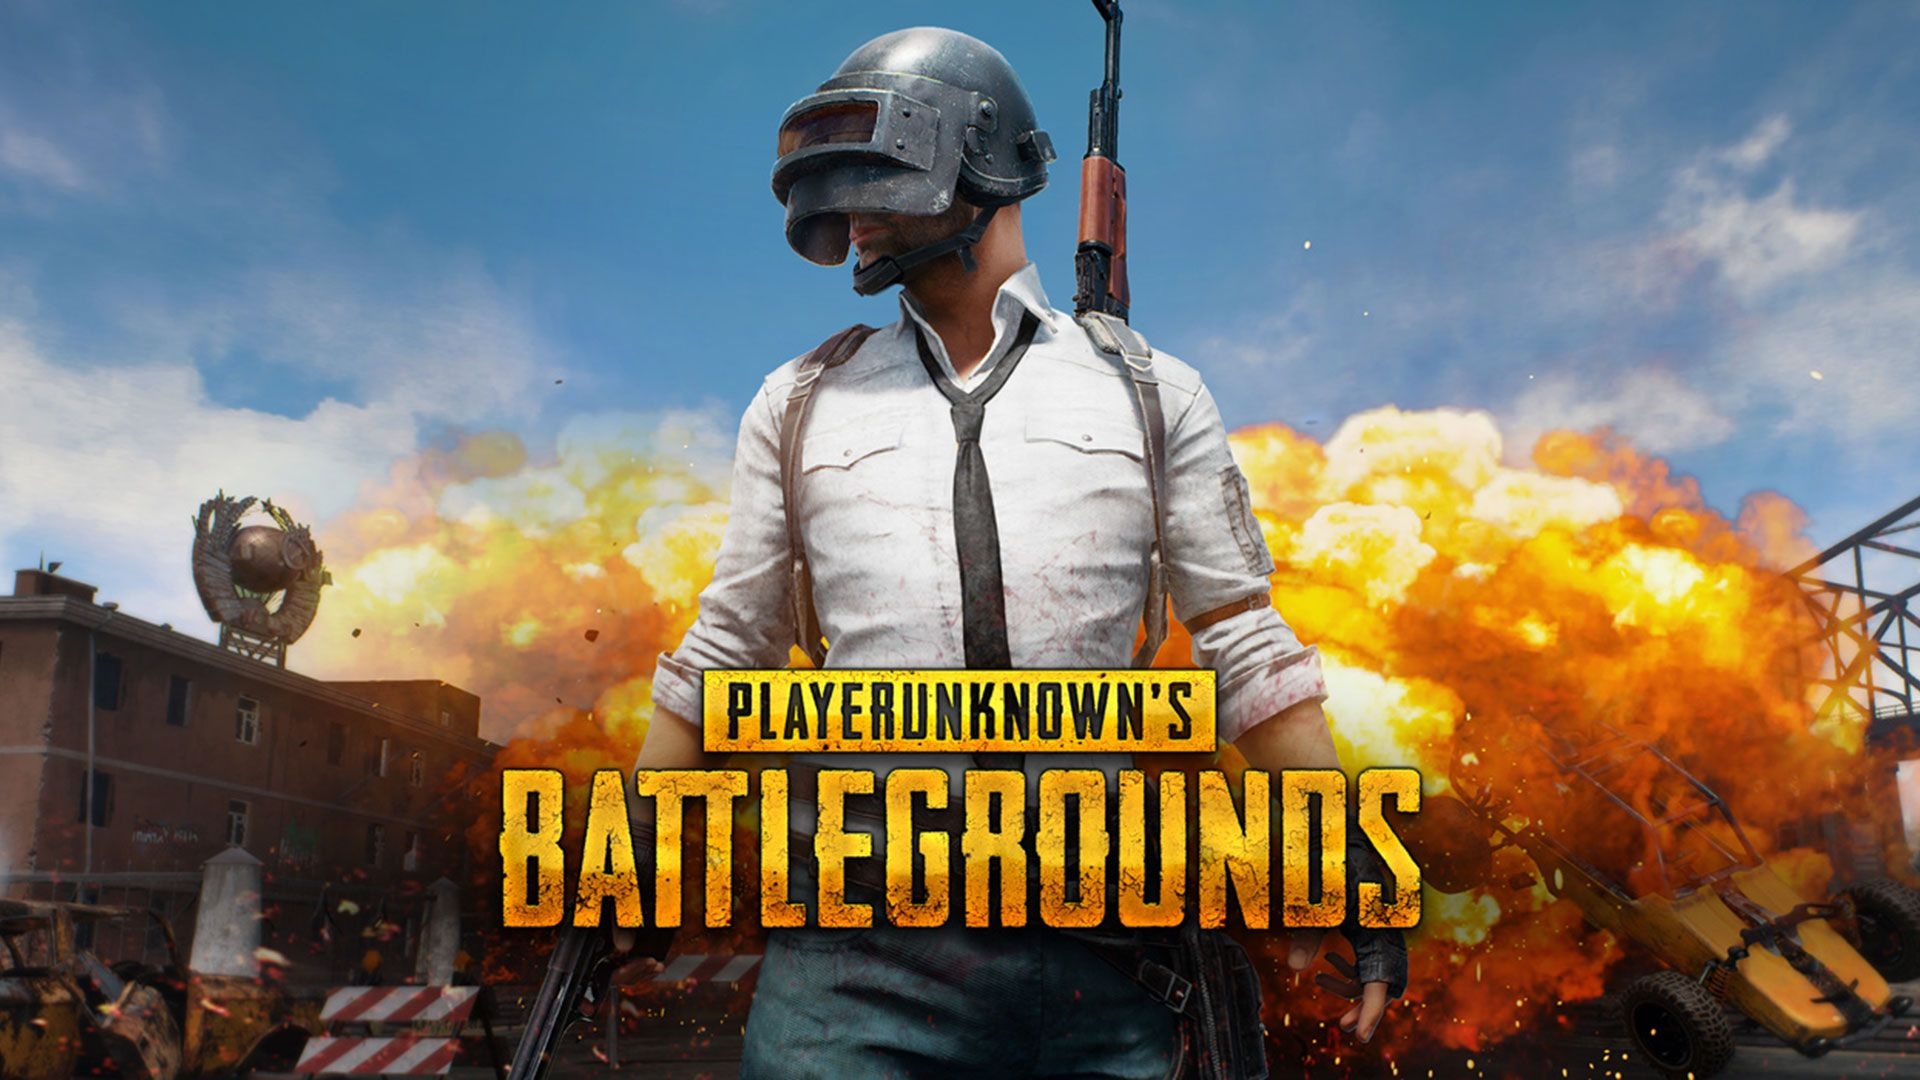 Pubg Wallpapers Full Hd On Wallpaper 1080p HD